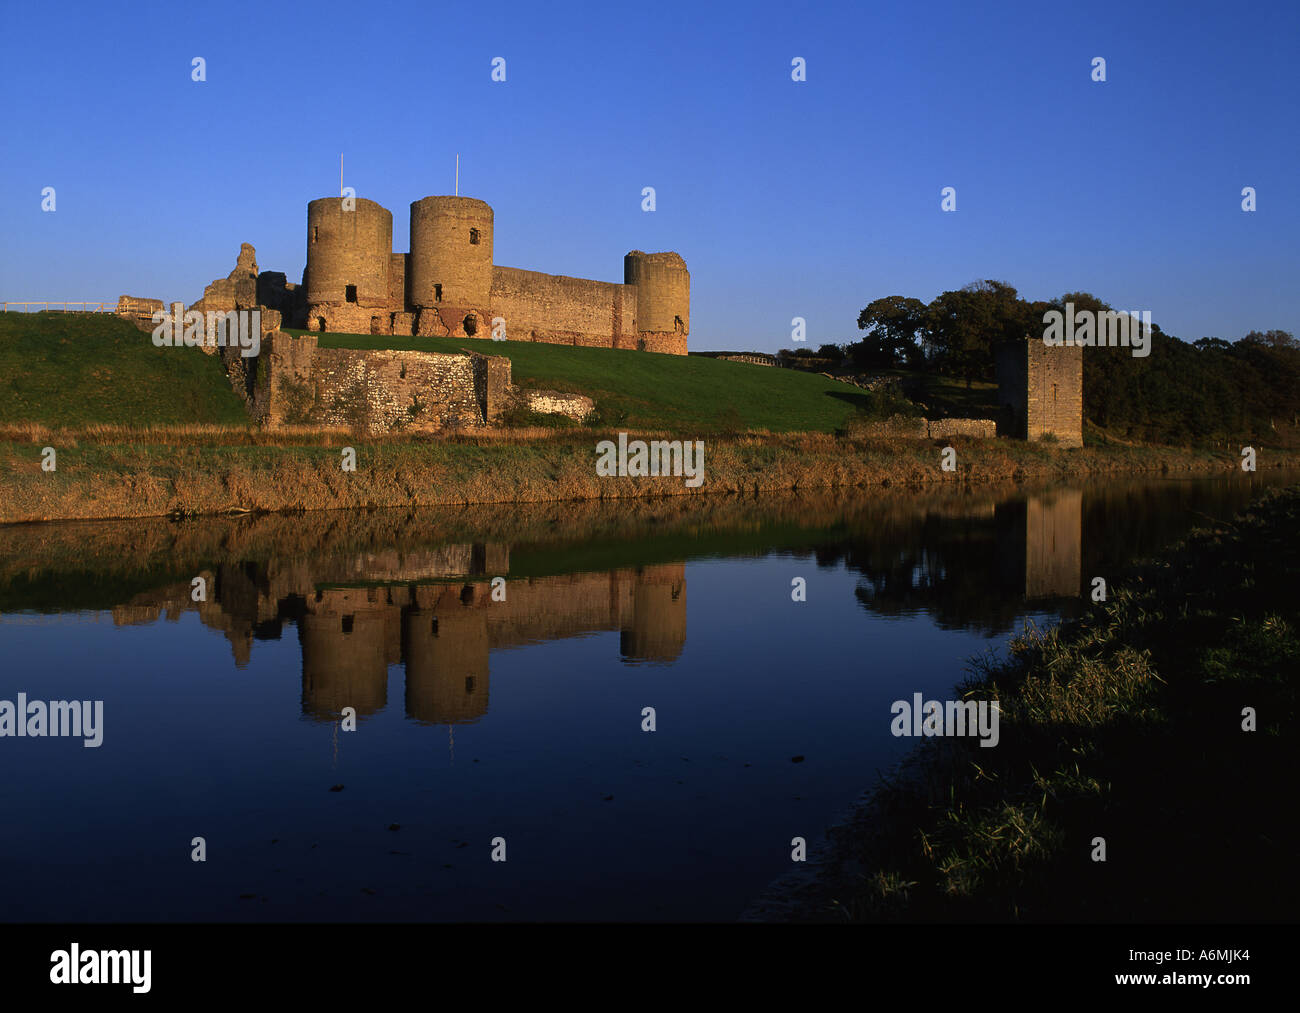 Rhuddlan Castle 13th 14th century Reflected in river Elwy 2 miles south of Rhyl Denbighshire North Wales UK - Stock Image